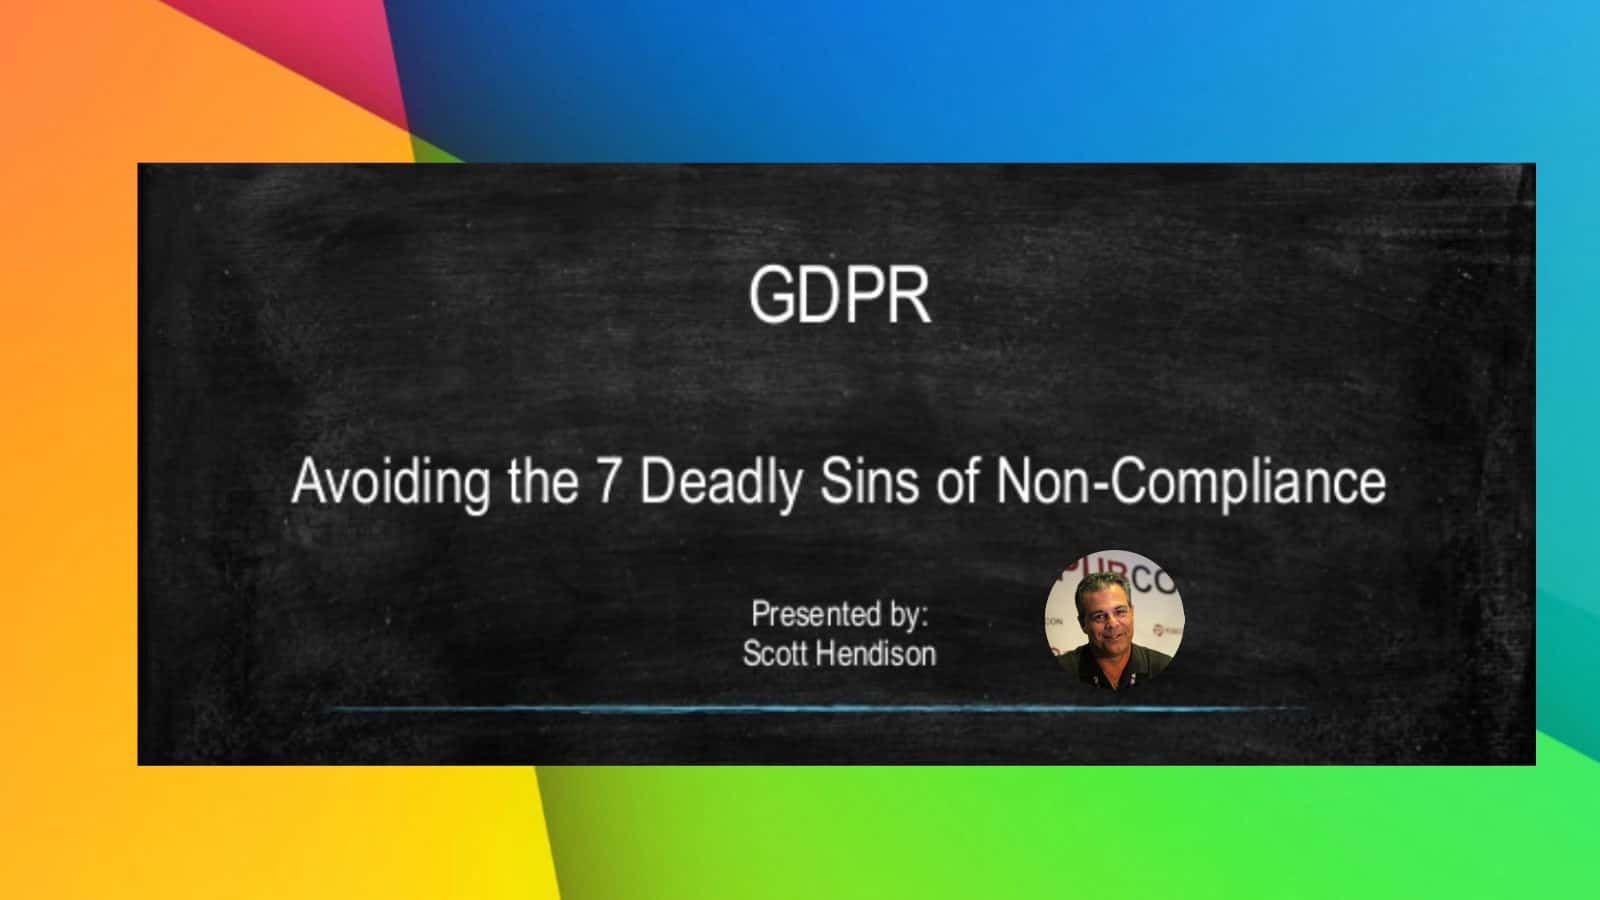 The 7 Deadly Sins Of Gdpr Non Compliance